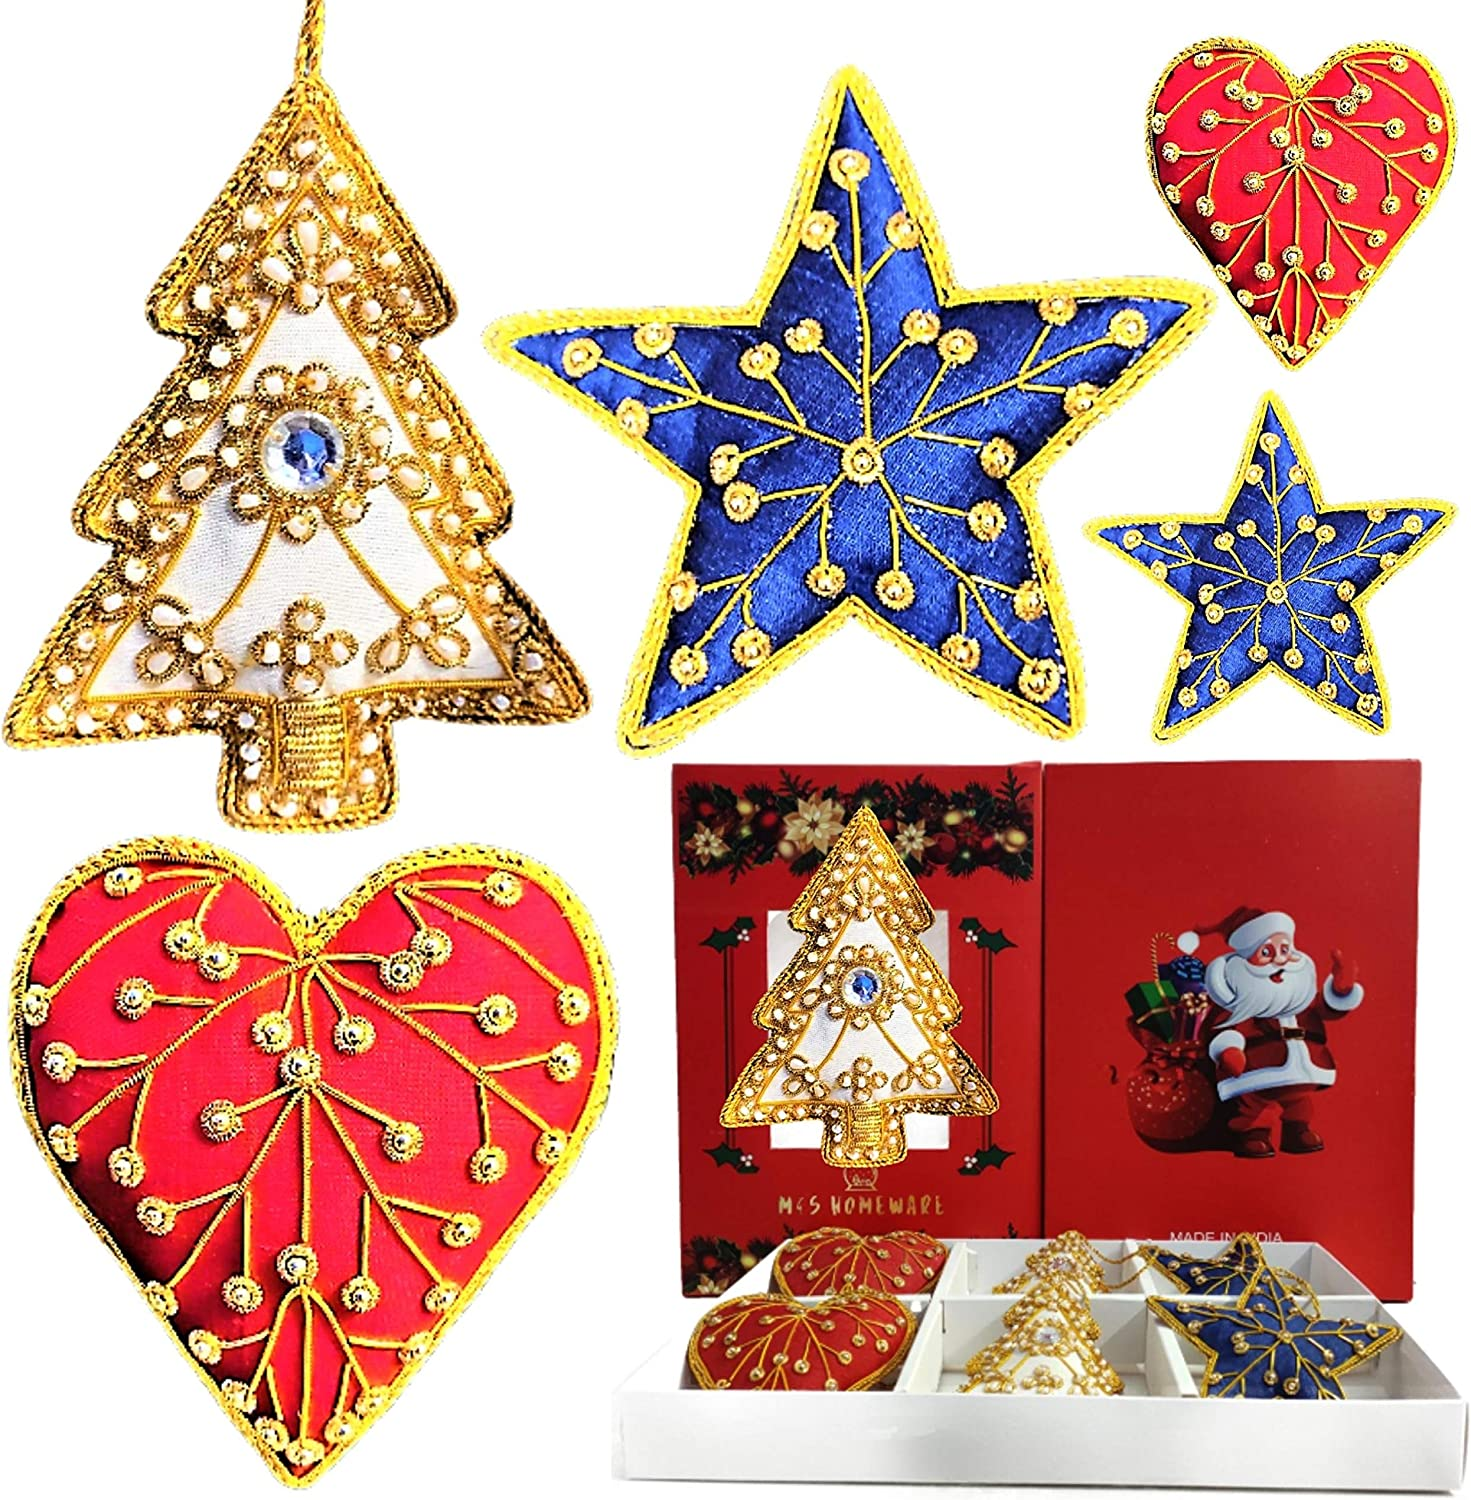 M&S Homeware Christmas Decorative Ornaments - Assorted Set of 6 Red Blue Off-White Handmade Embroidered Christmas Hangings - Christmas Décor Secret Santa Gift Ideas - Christmas Wreath Add on Pendants